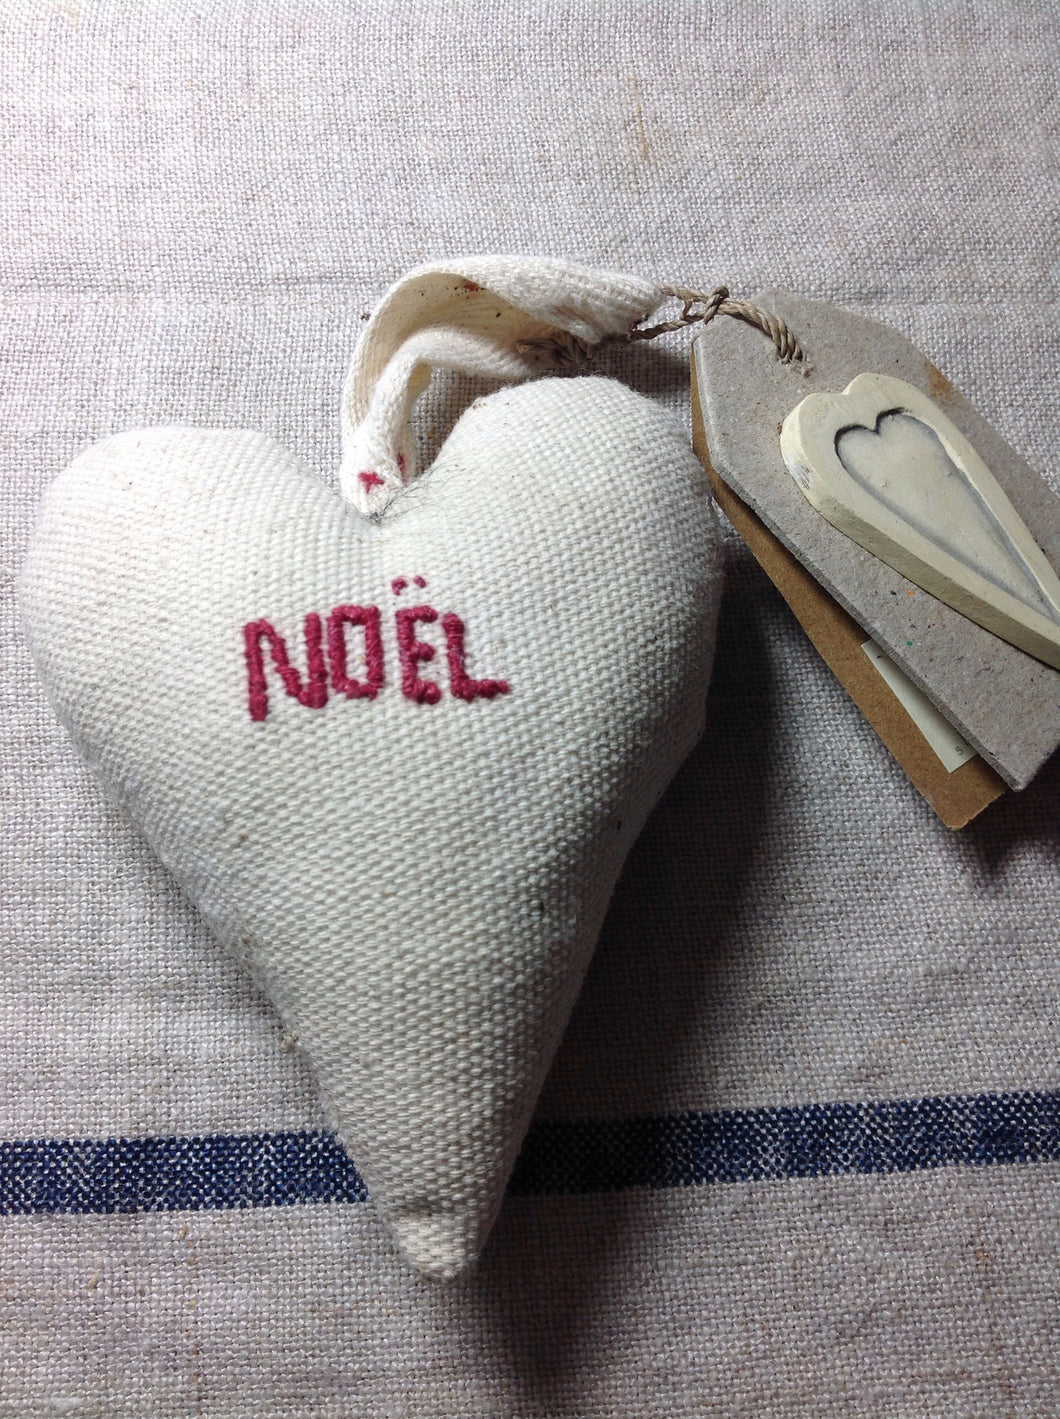 Cream hanging Christmas decoration heart with Noel embroidered on the front.